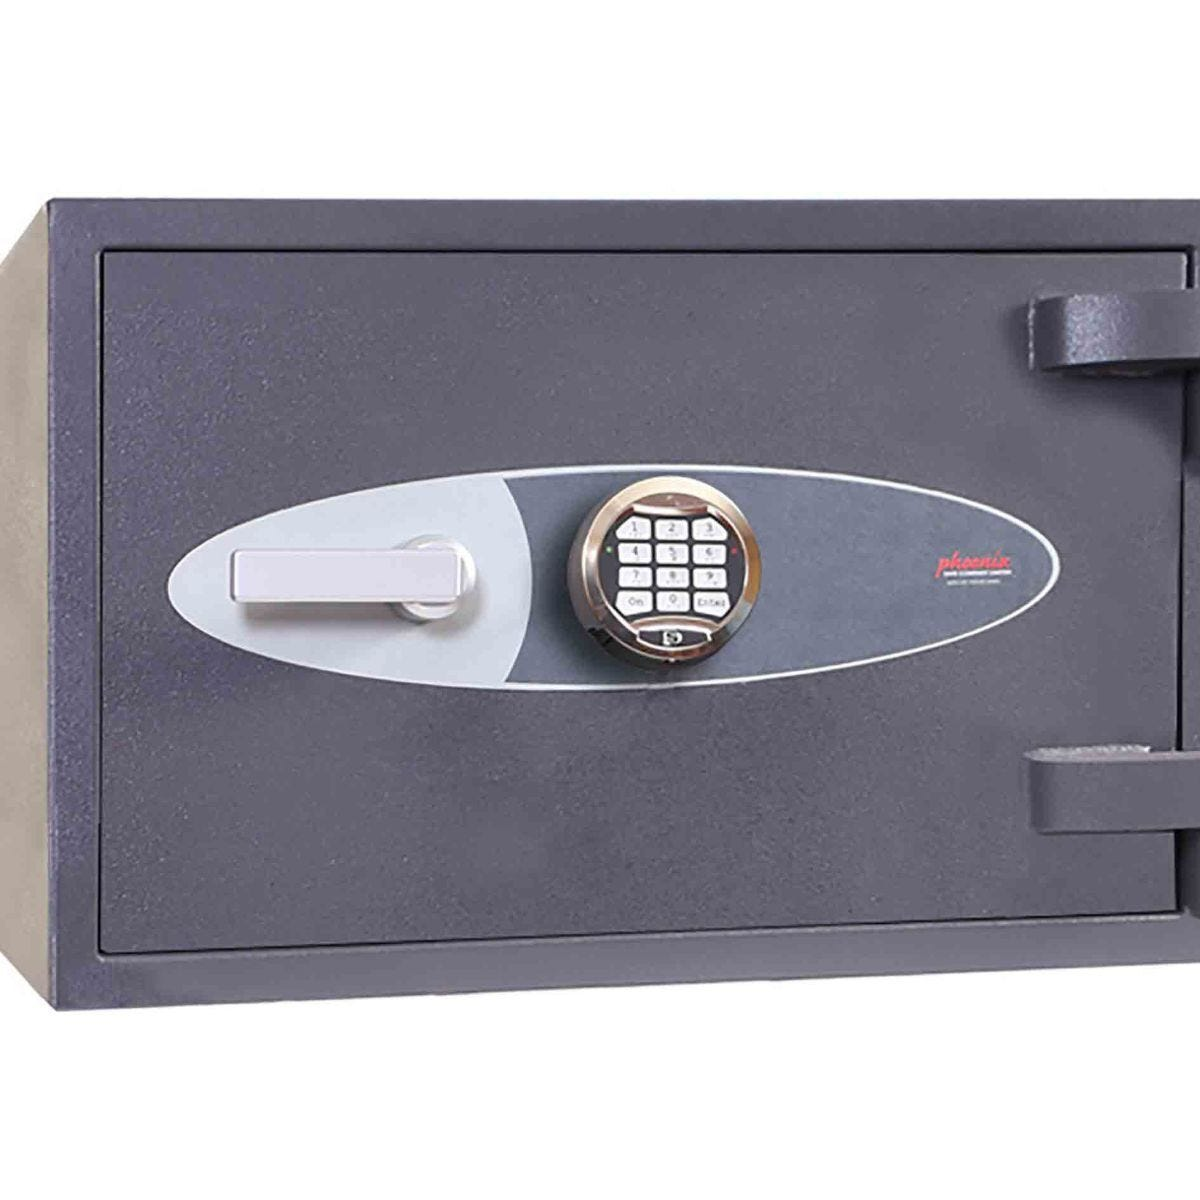 Phoenix Neptune HS1051E High Security Euro Grade 1 Safe with Electronic Lock Size 1